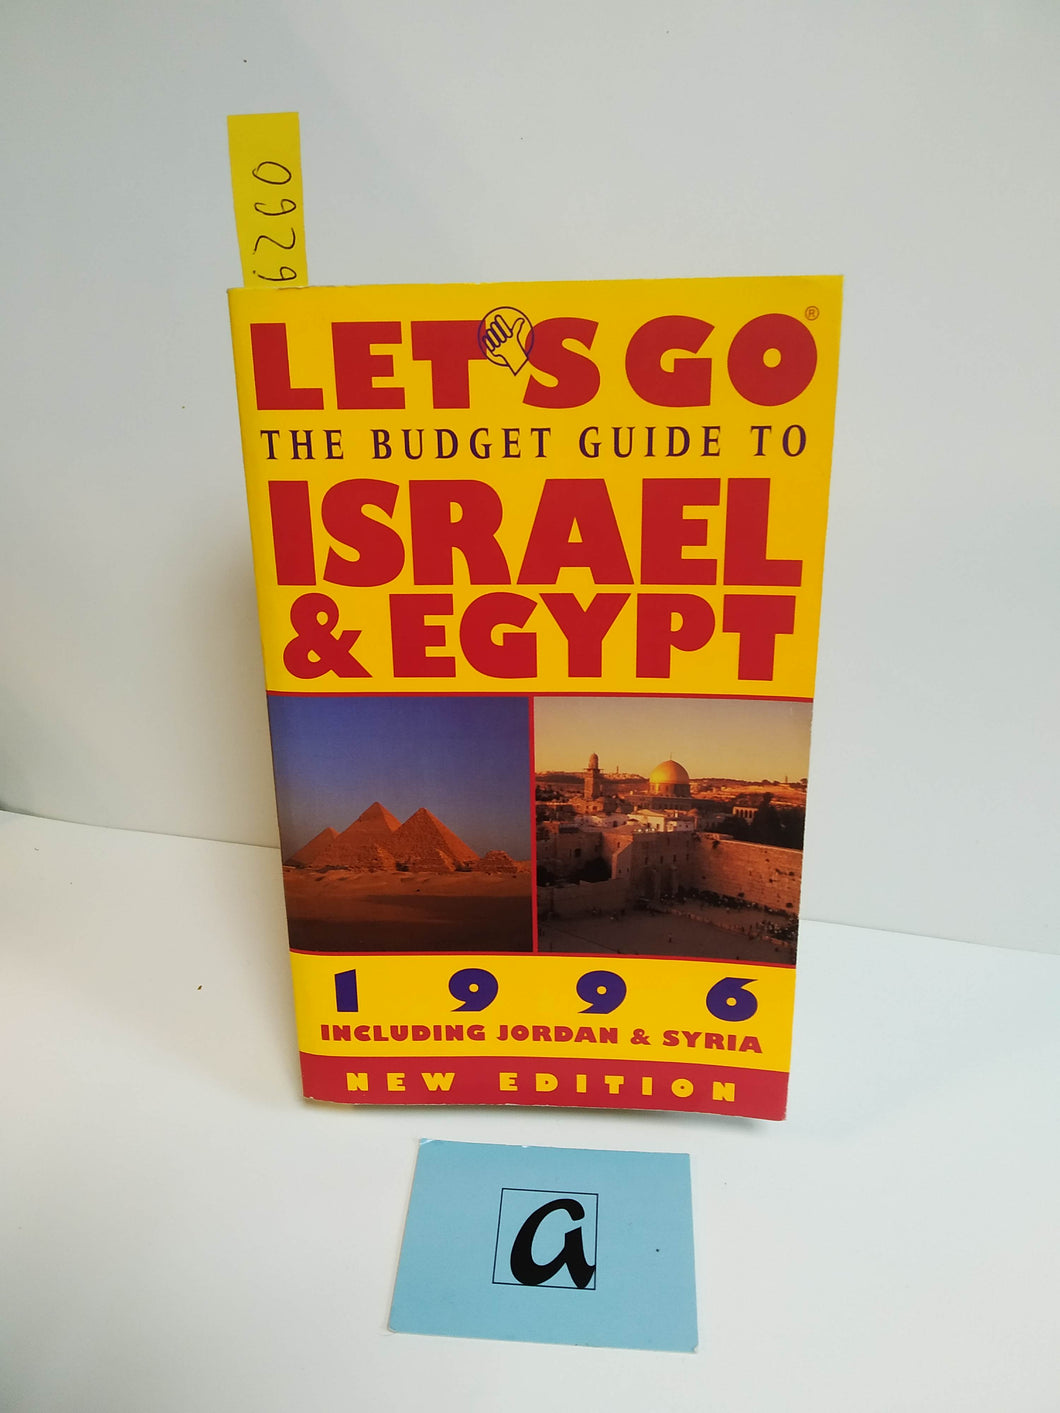 The Budget guide to Israel & Egypt 1996